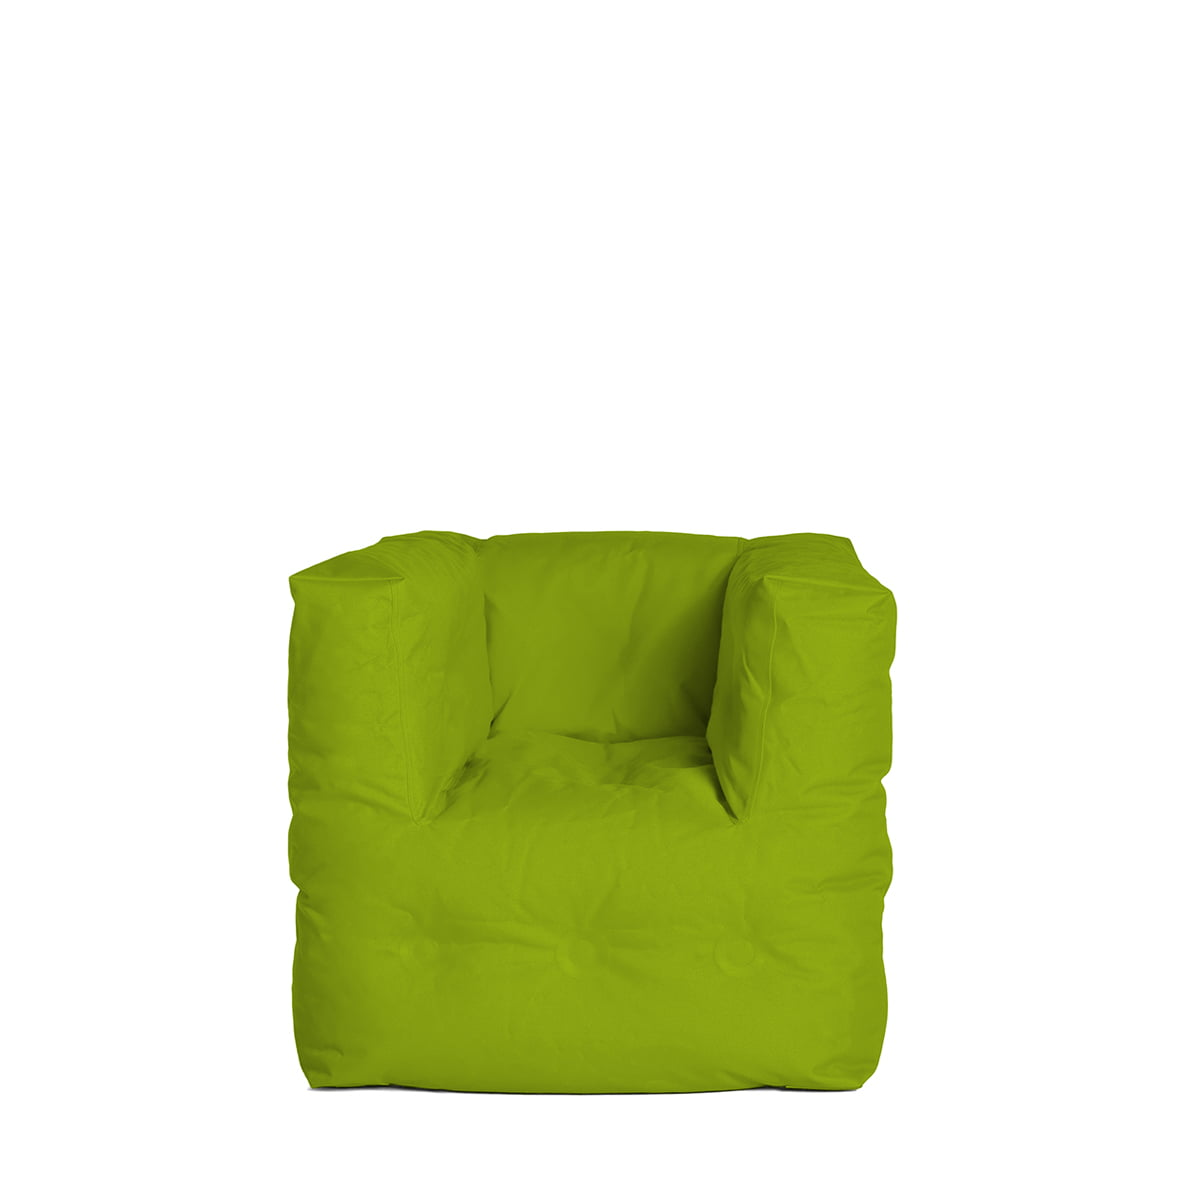 Sitting Bull Design.Sitting Bull Couch I Armchair Green